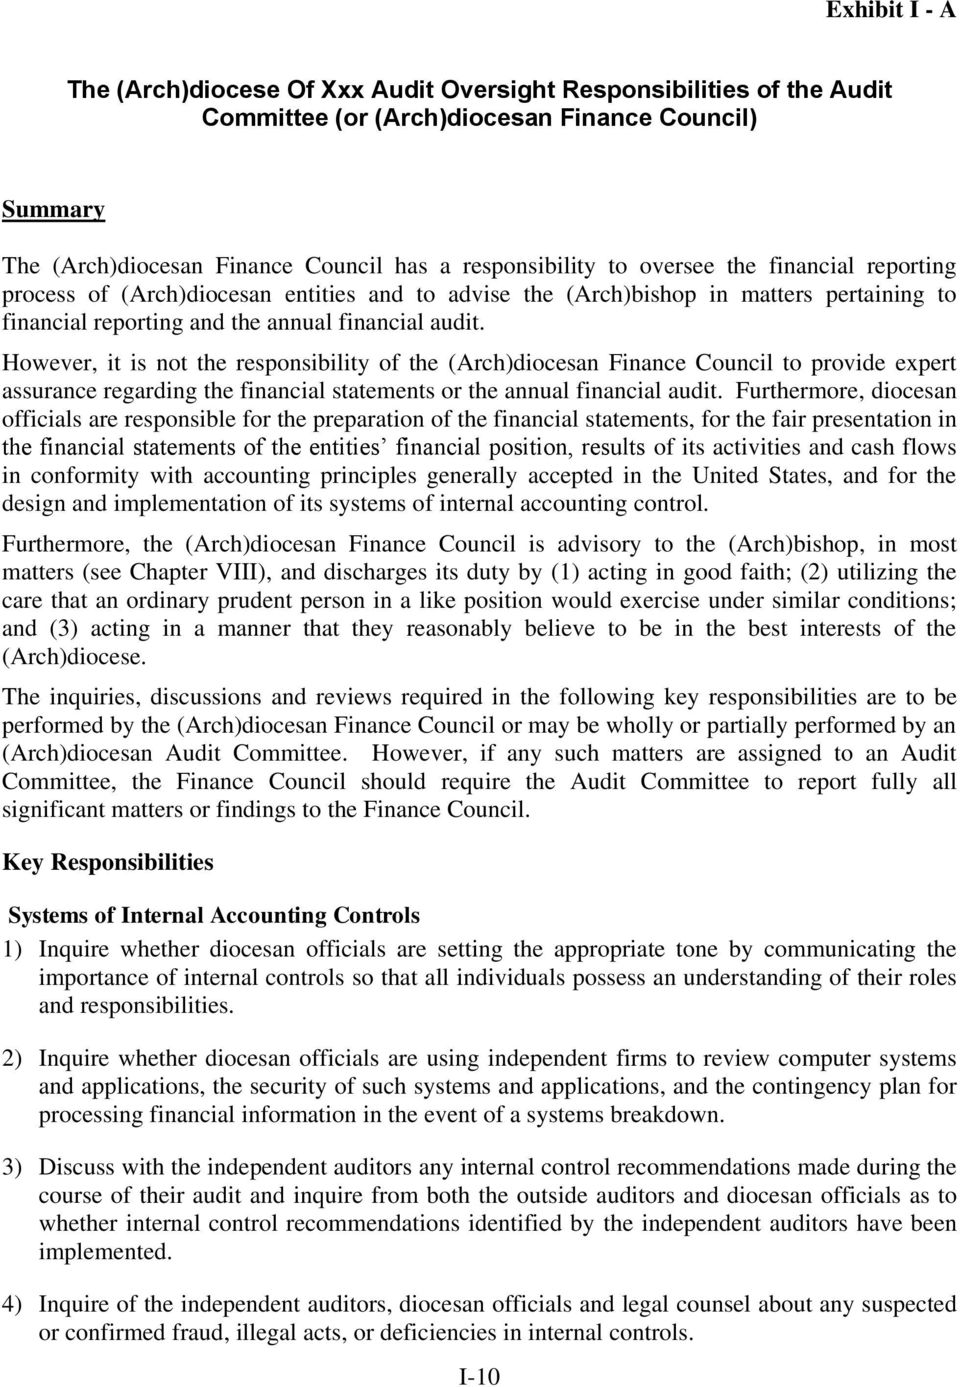 However, it is not the responsibility of the (Arch)diocesan Finance Council to provide expert assurance regarding the financial statements or the annual financial audit.